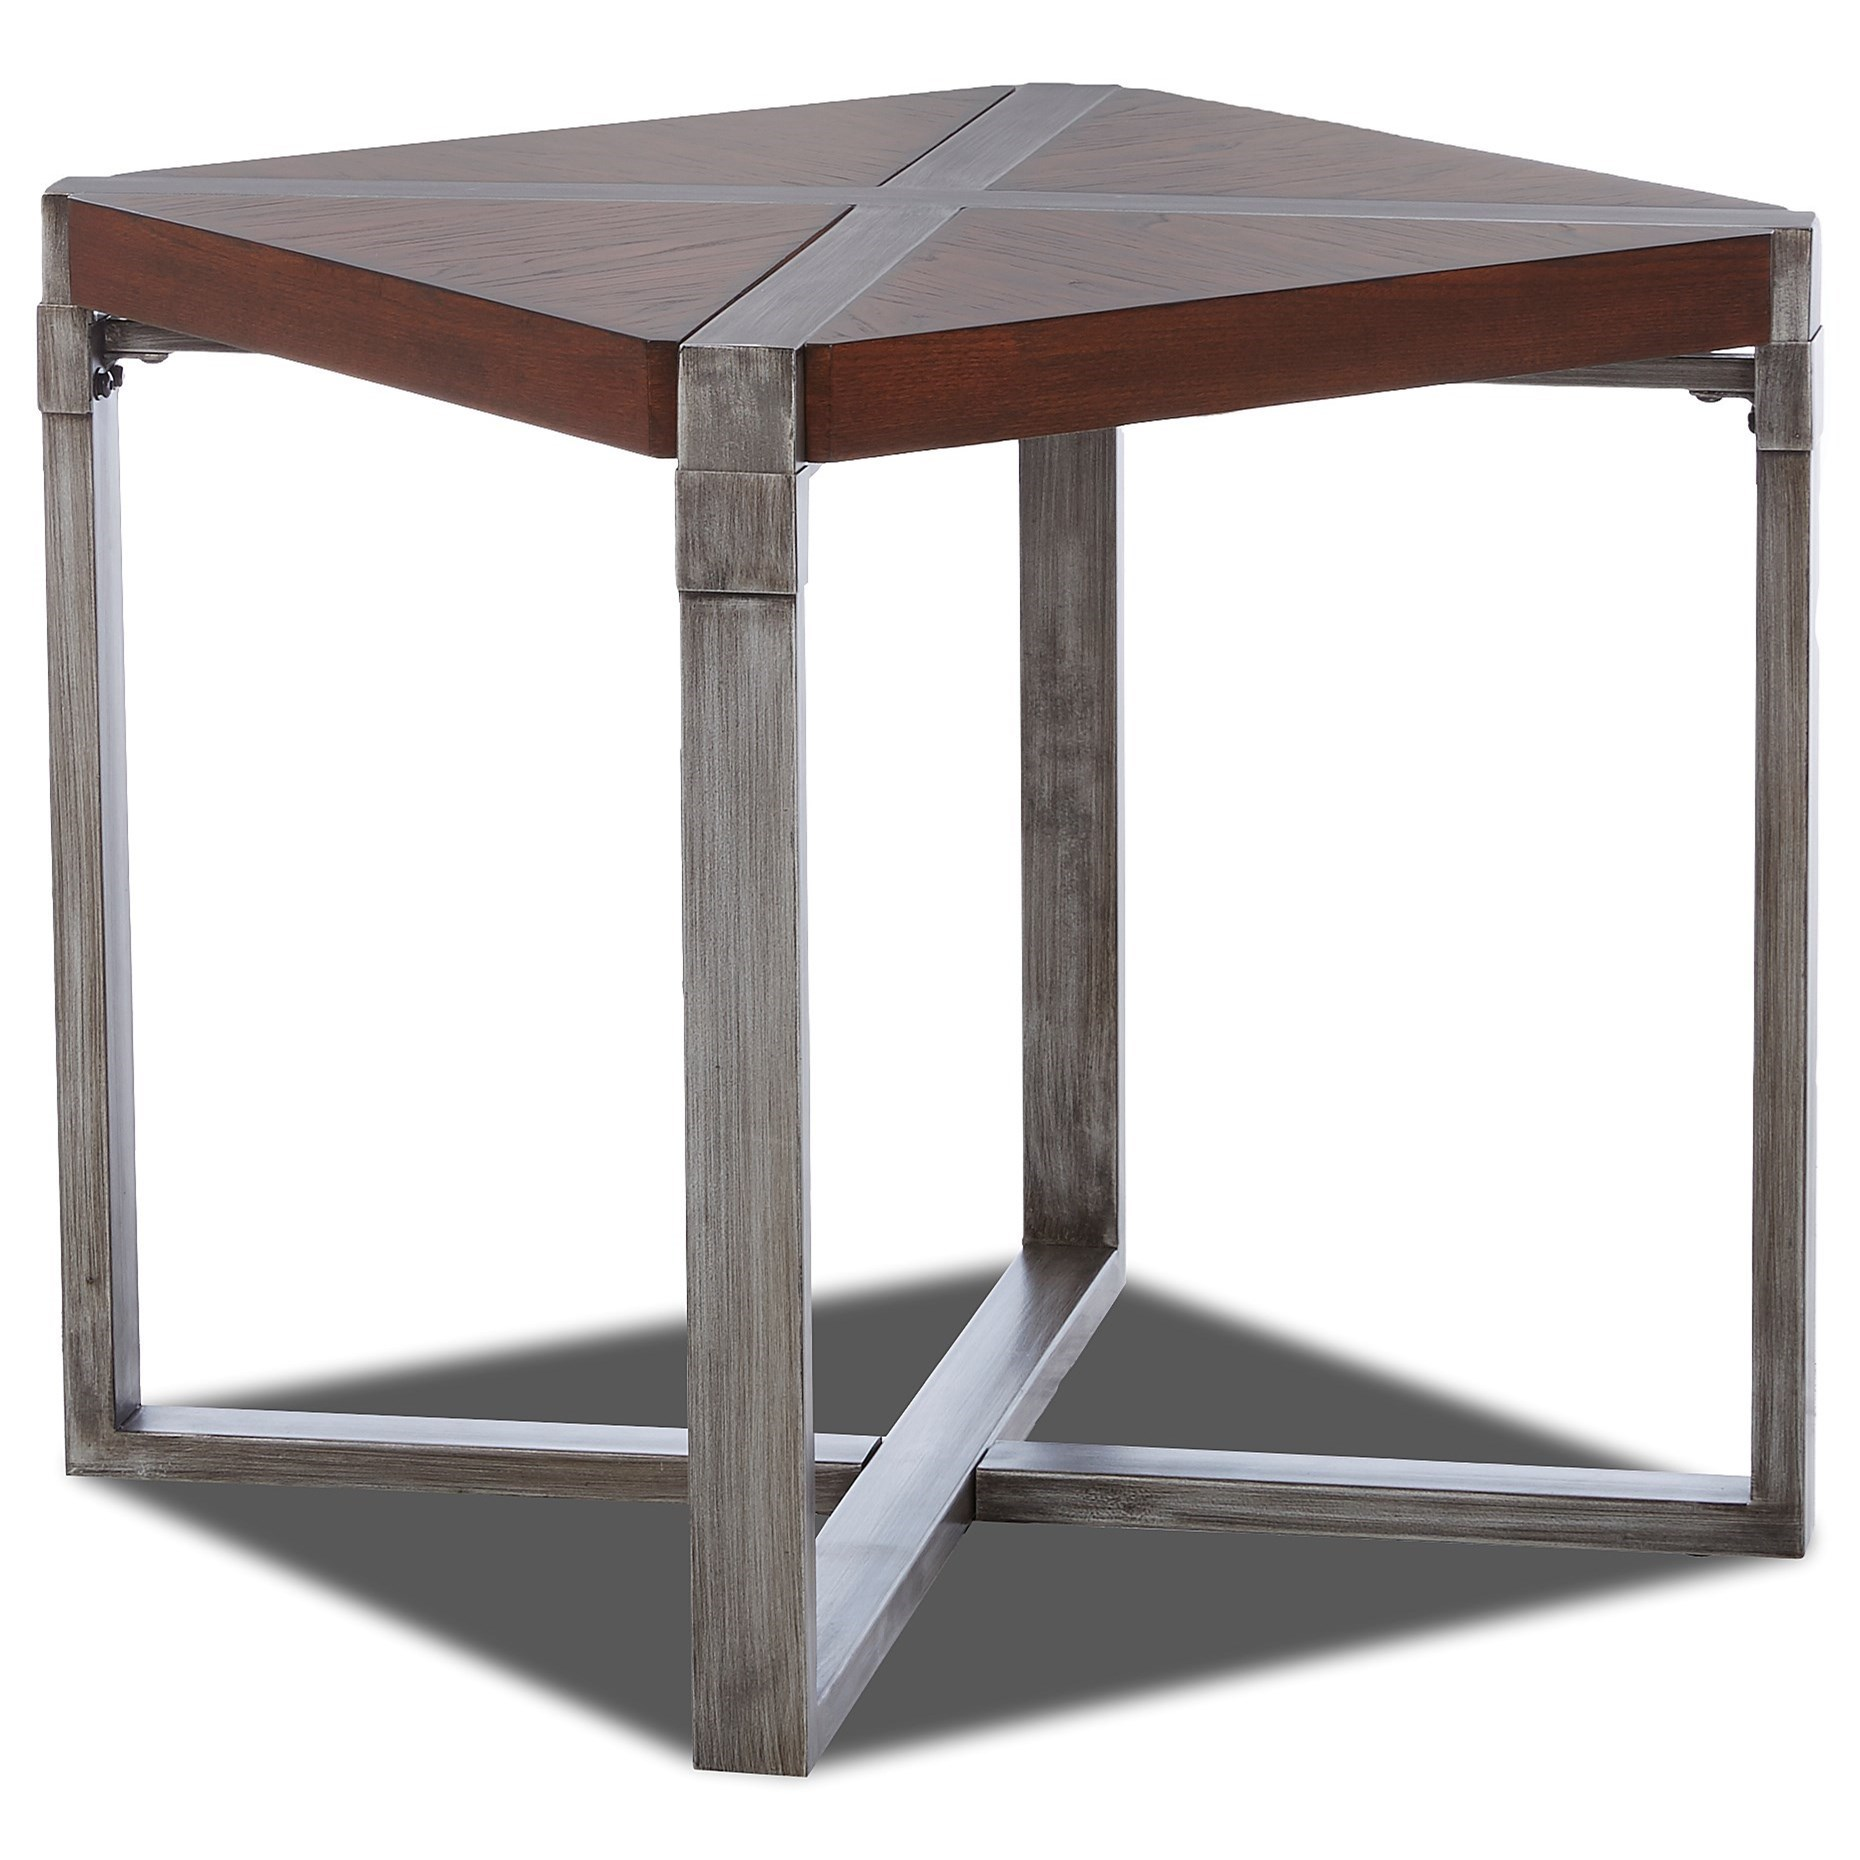 Sophisticated Metropia International Woodbrookend Table Woodbrook Industrial End Table Ruby Gordon Home End Tables Industrial End Table Target Industrial End Table Diy houzz-02 Industrial End Table